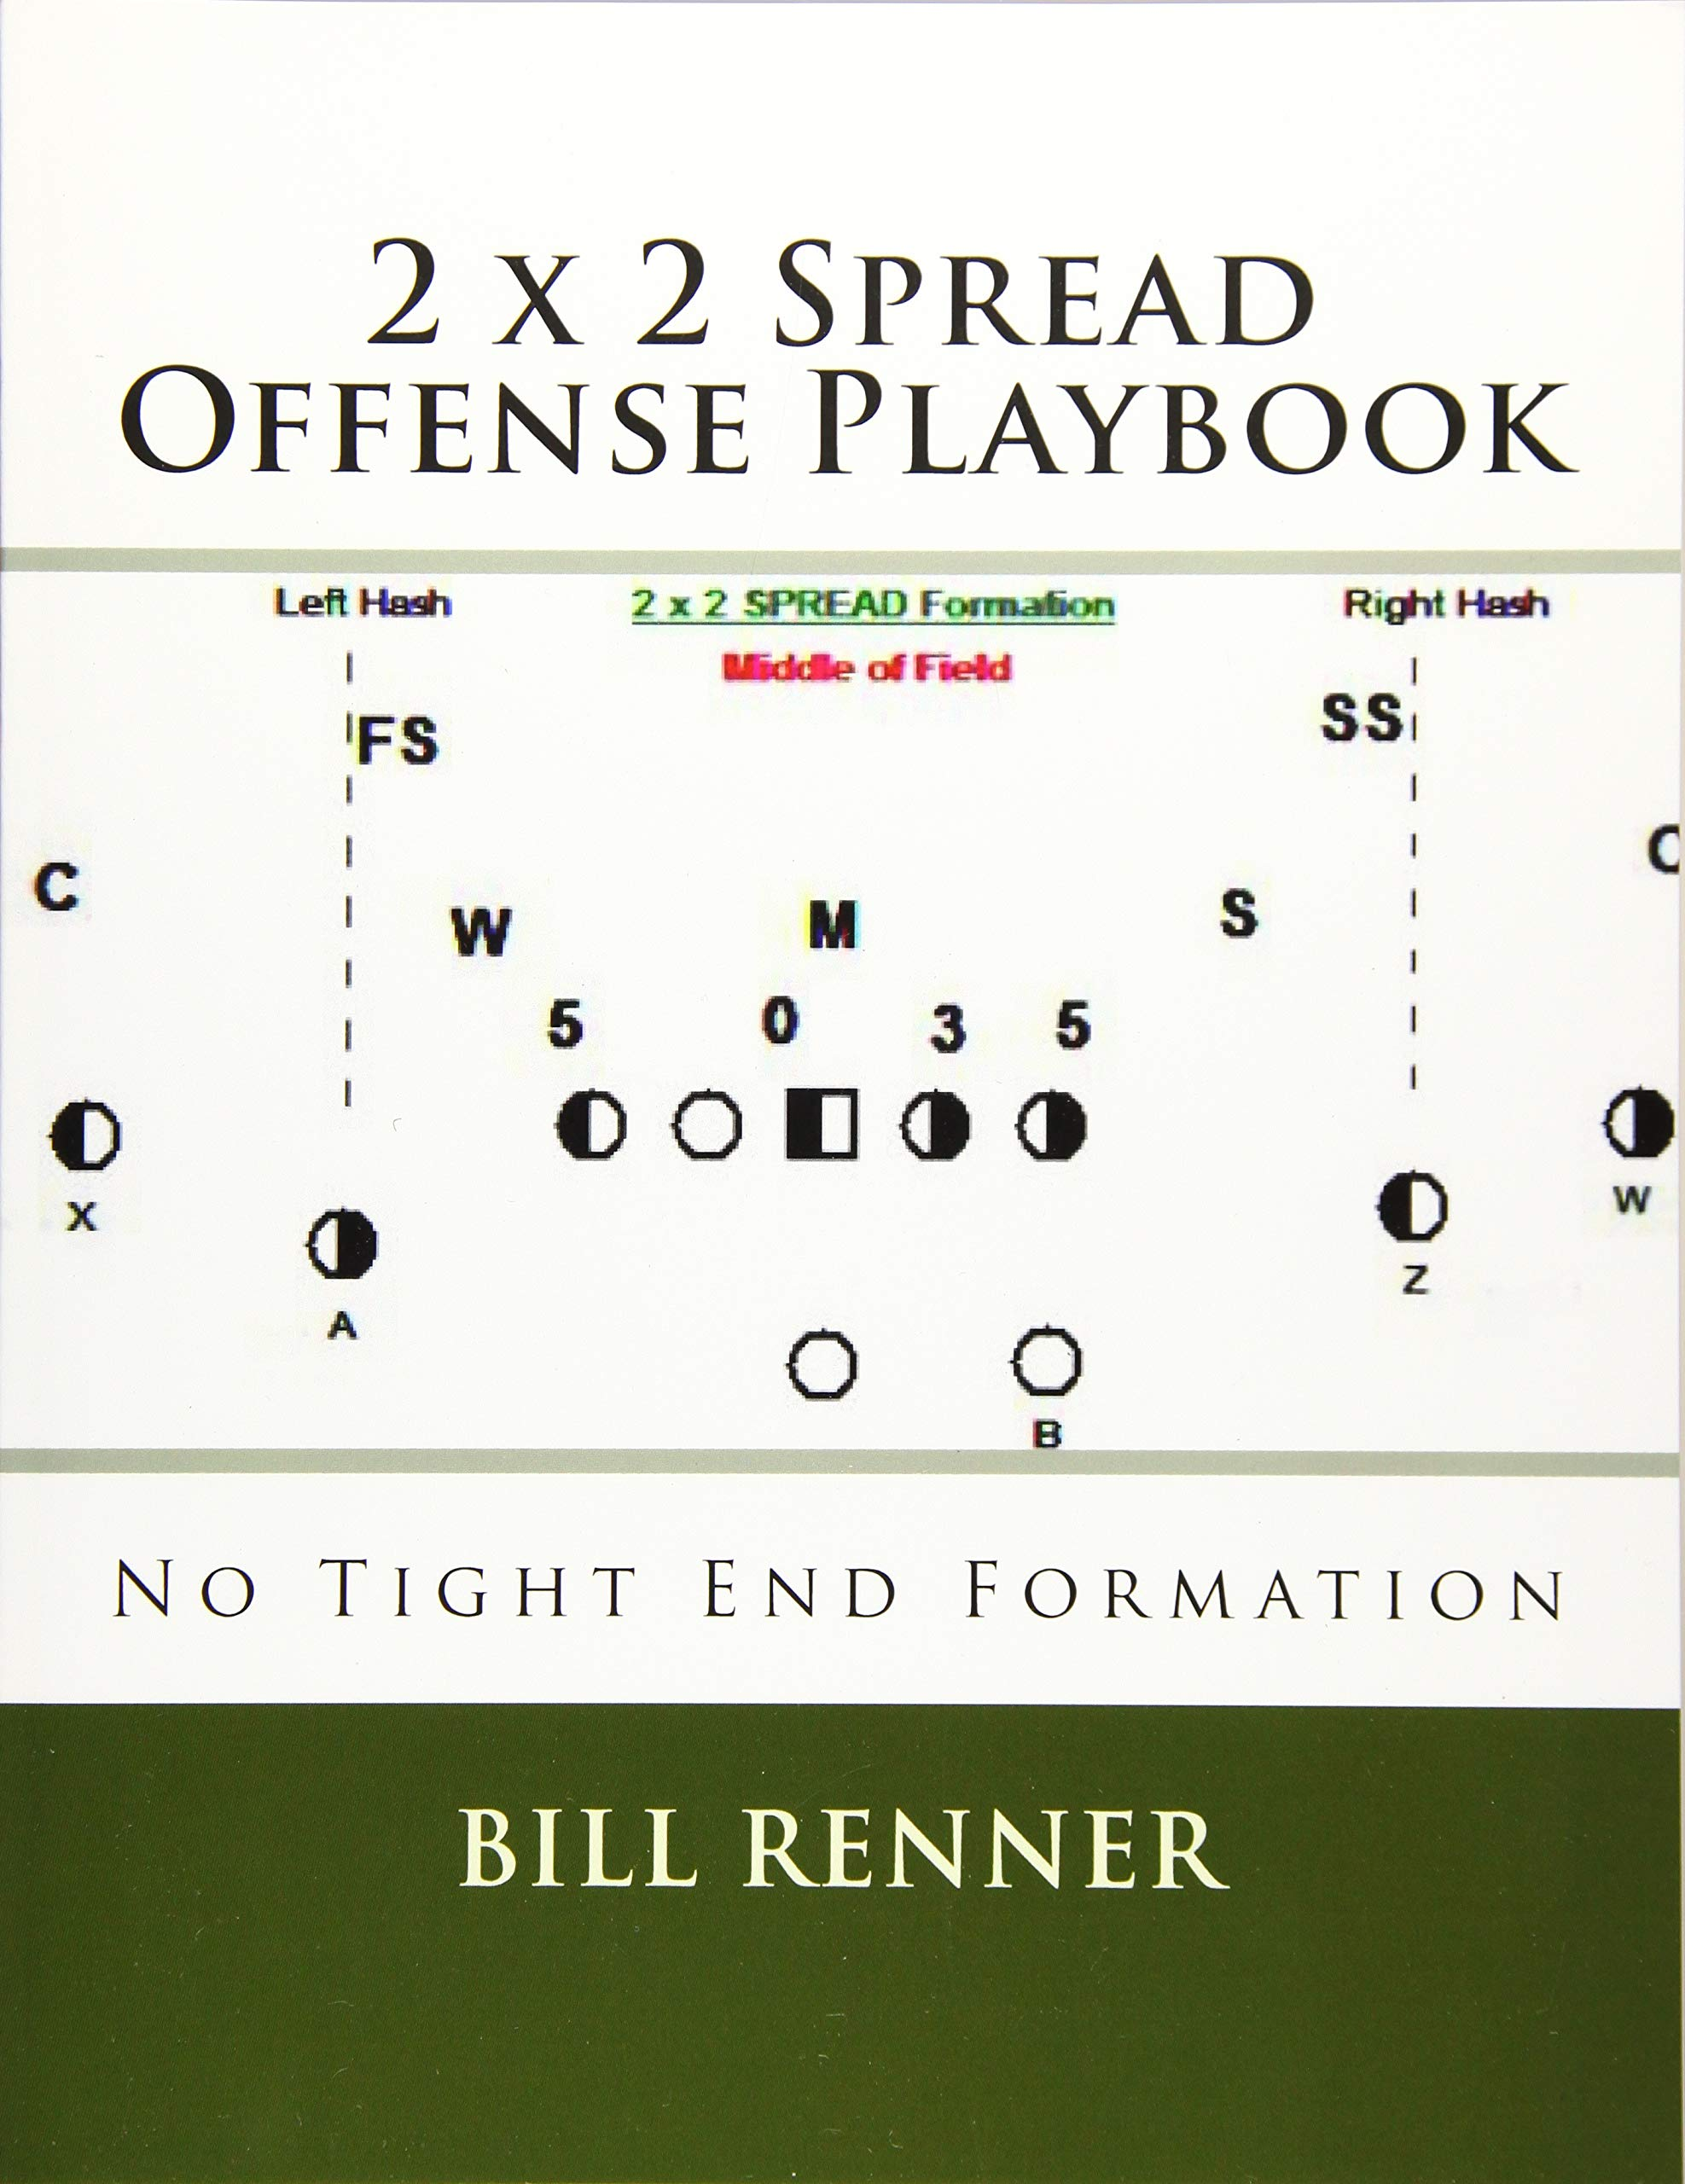 Playbook wing pdf offense t 6 Free